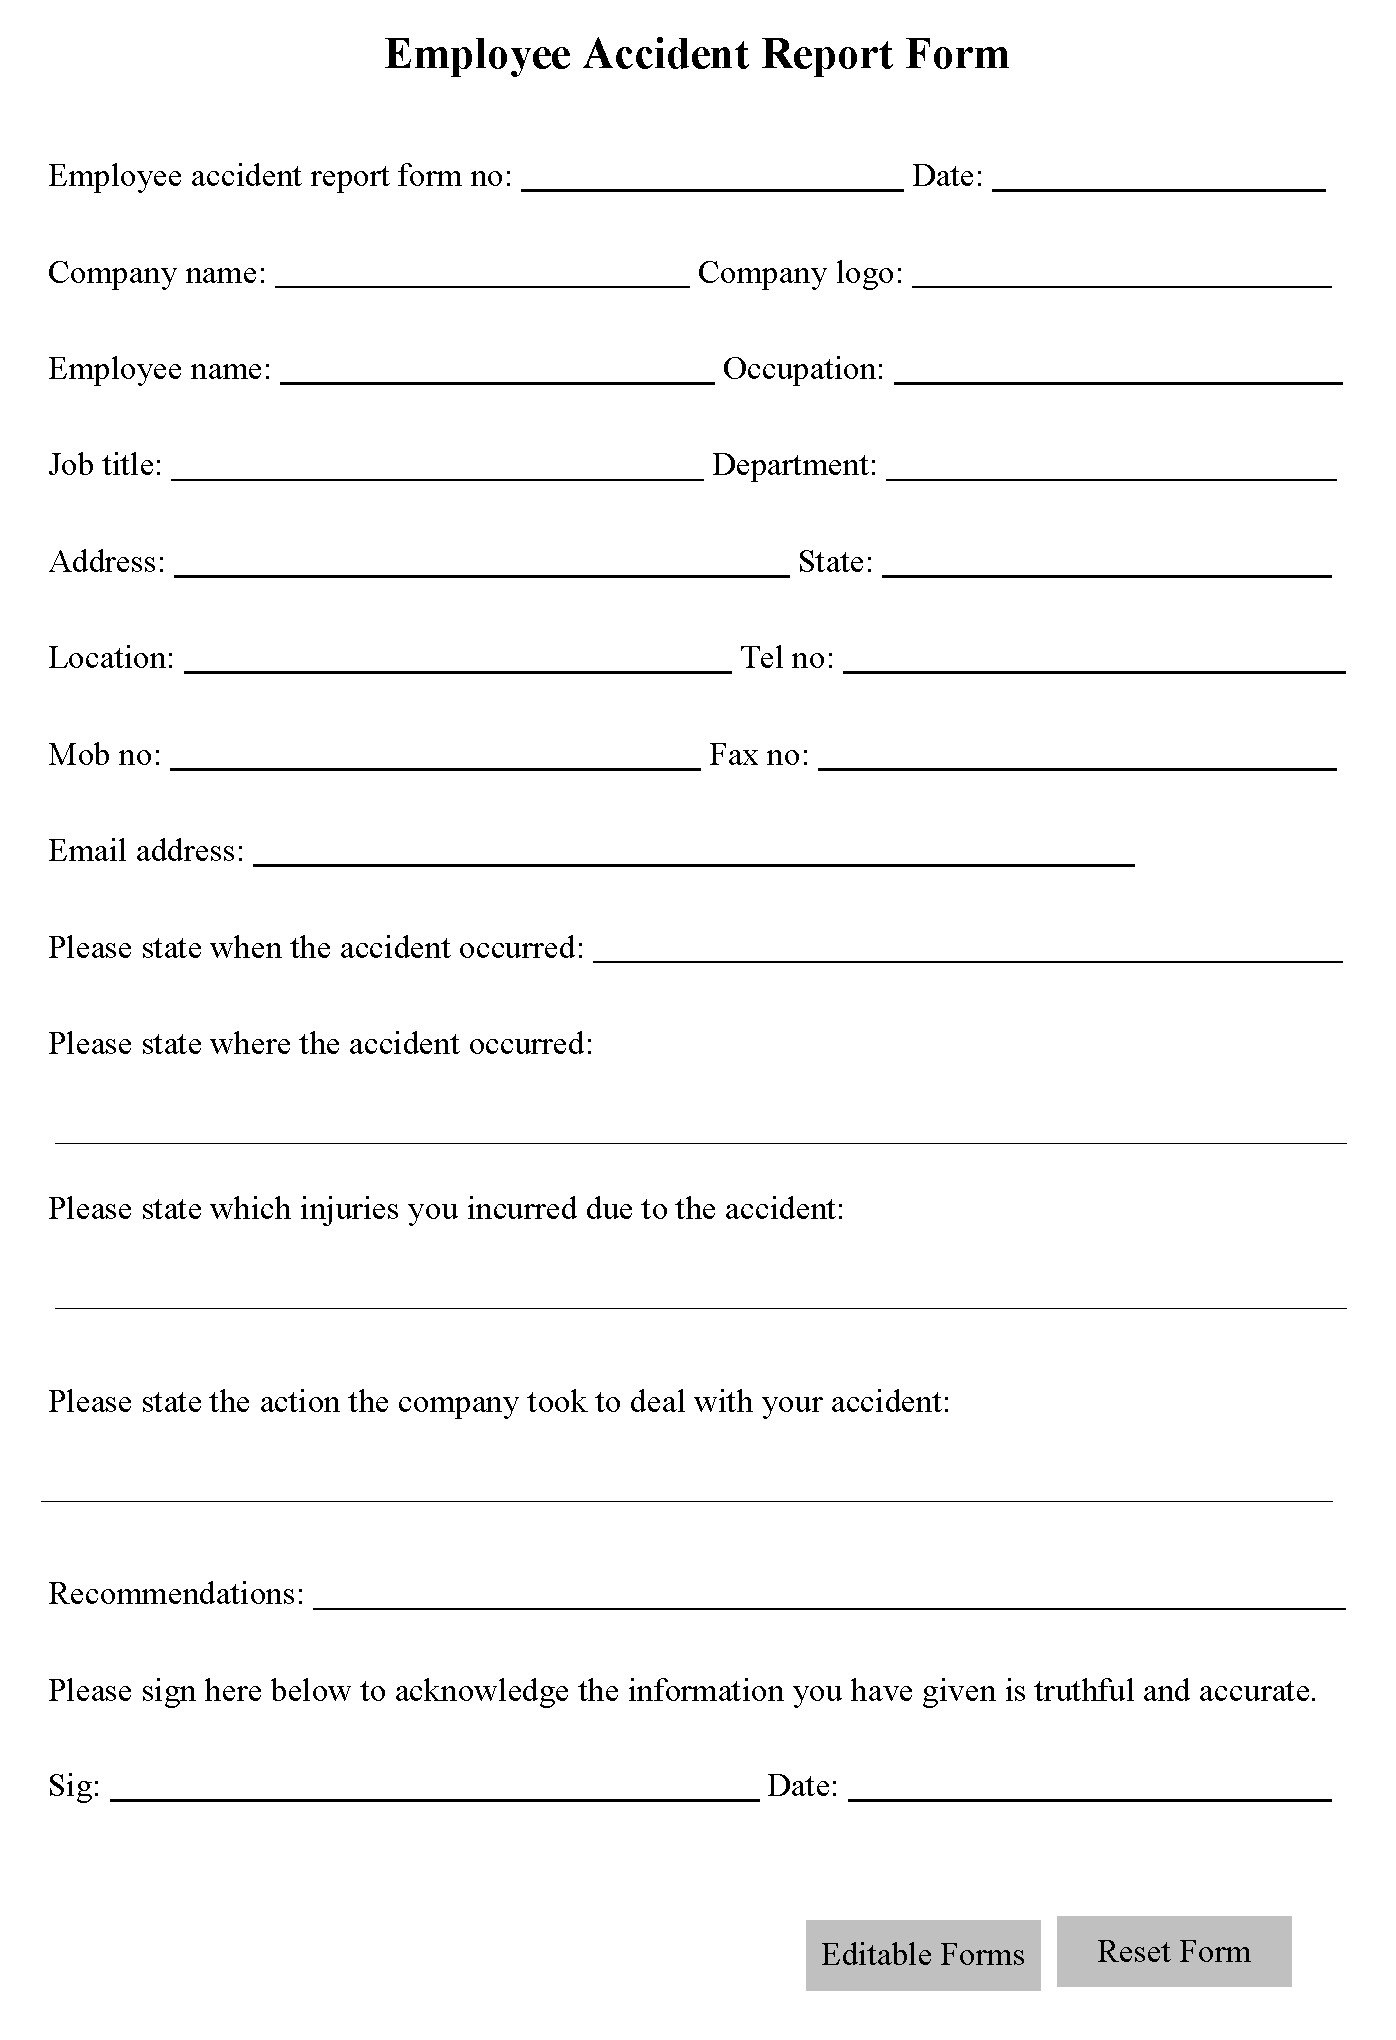 Work Place Accident Report Form Coloring Pages For Kids Plate In Vehicle Accident Report Template